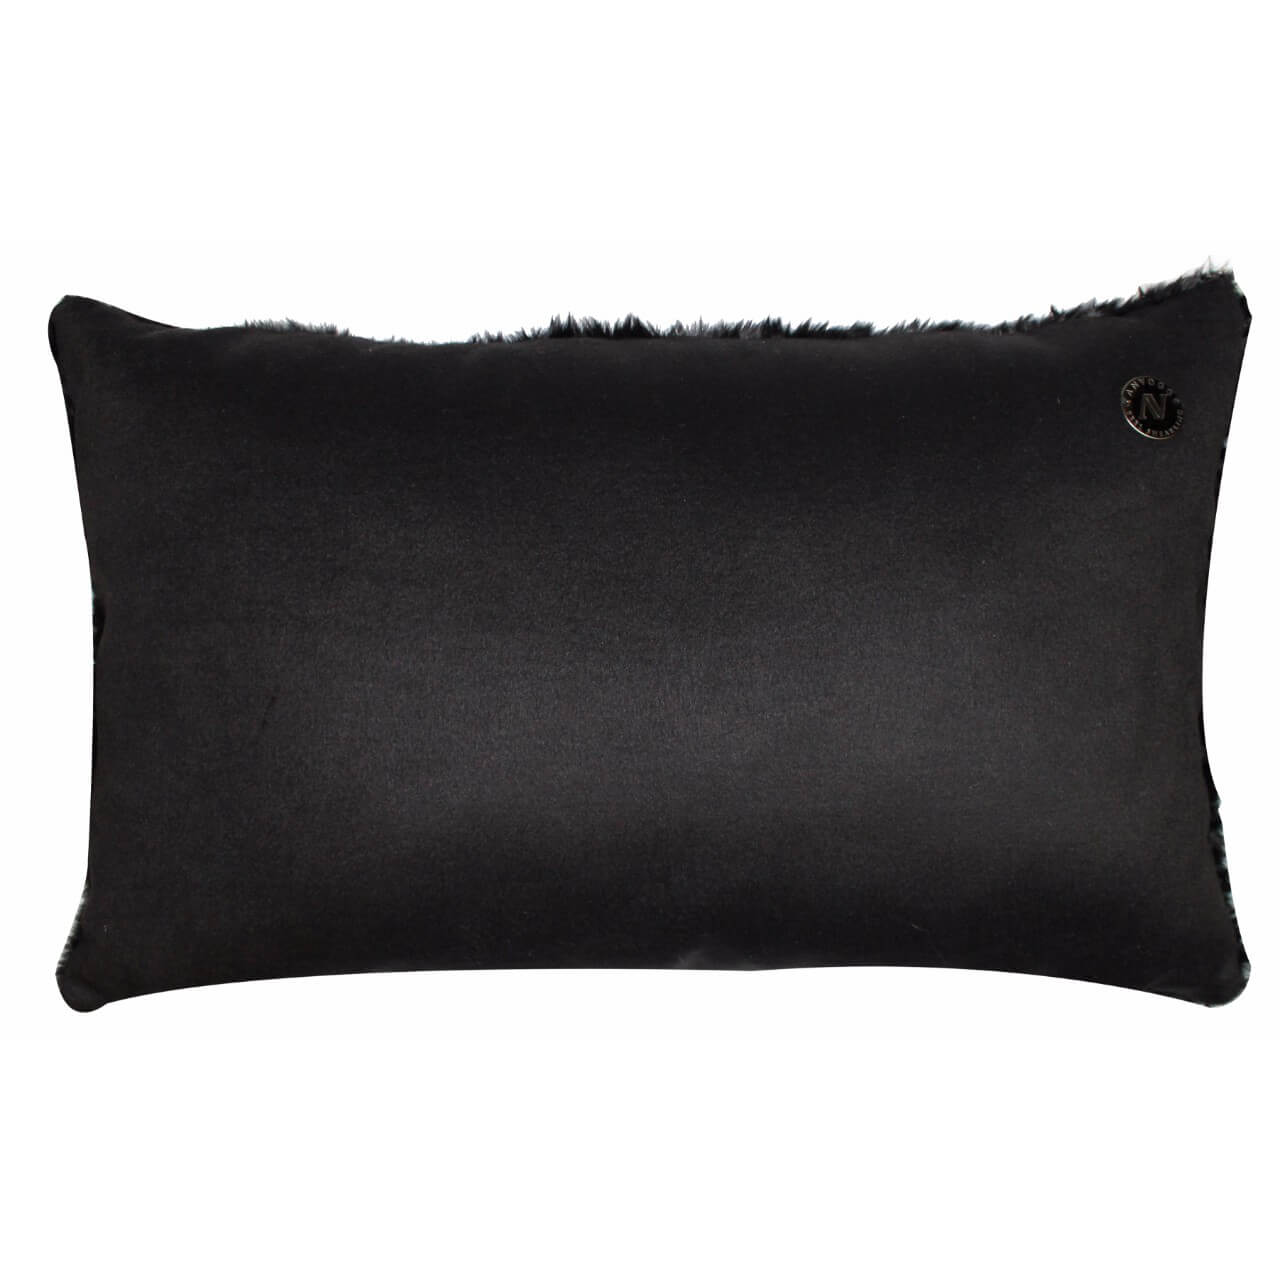 Shearling Pillow- 35x55cm-(APBLABL3555) arka - ANVOGG FEEL SHEARLING | ANVOGG